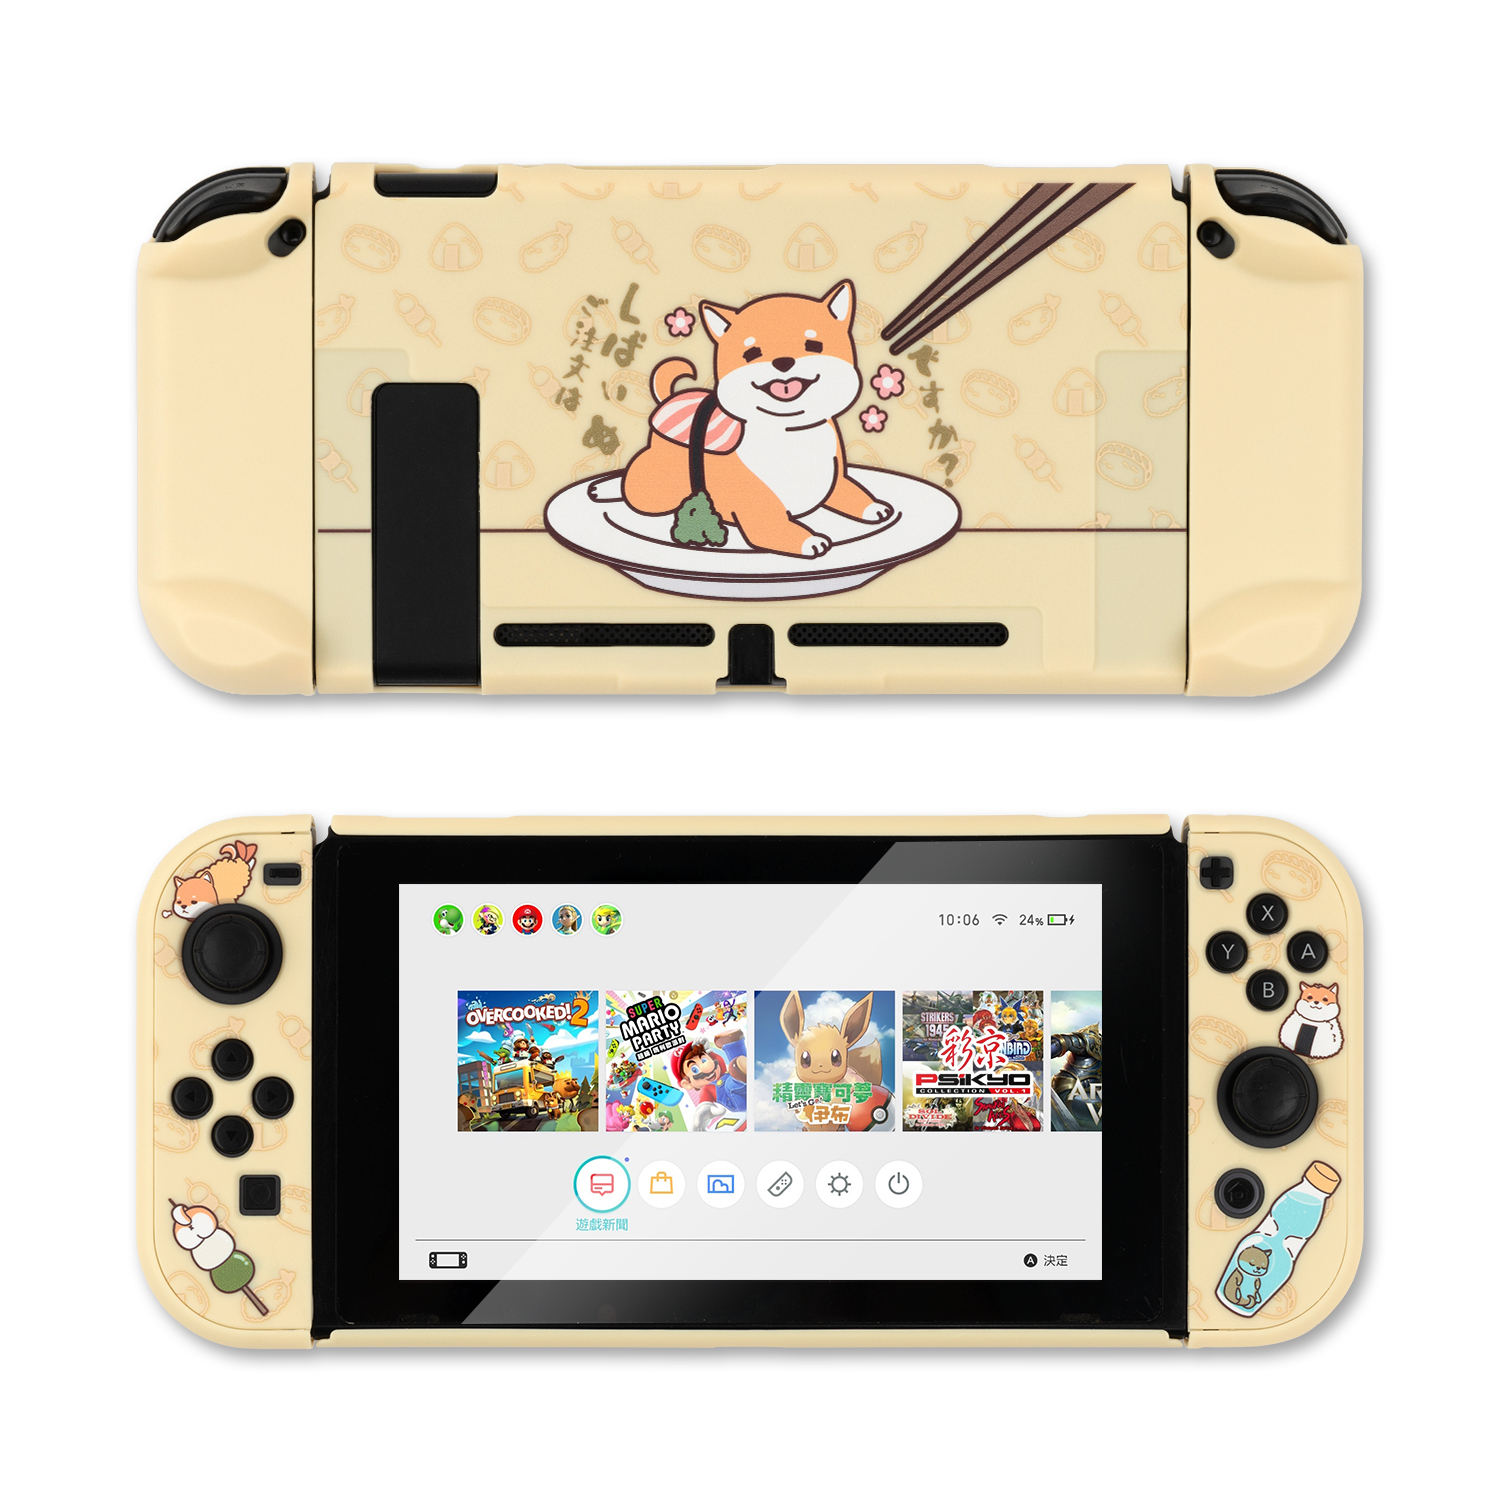 GEEKSHARE Nintendo Switch Lite Case Cute Shiba Inu Shell Sea Otter Hard Cover Back Grip Shell For NS Accessories